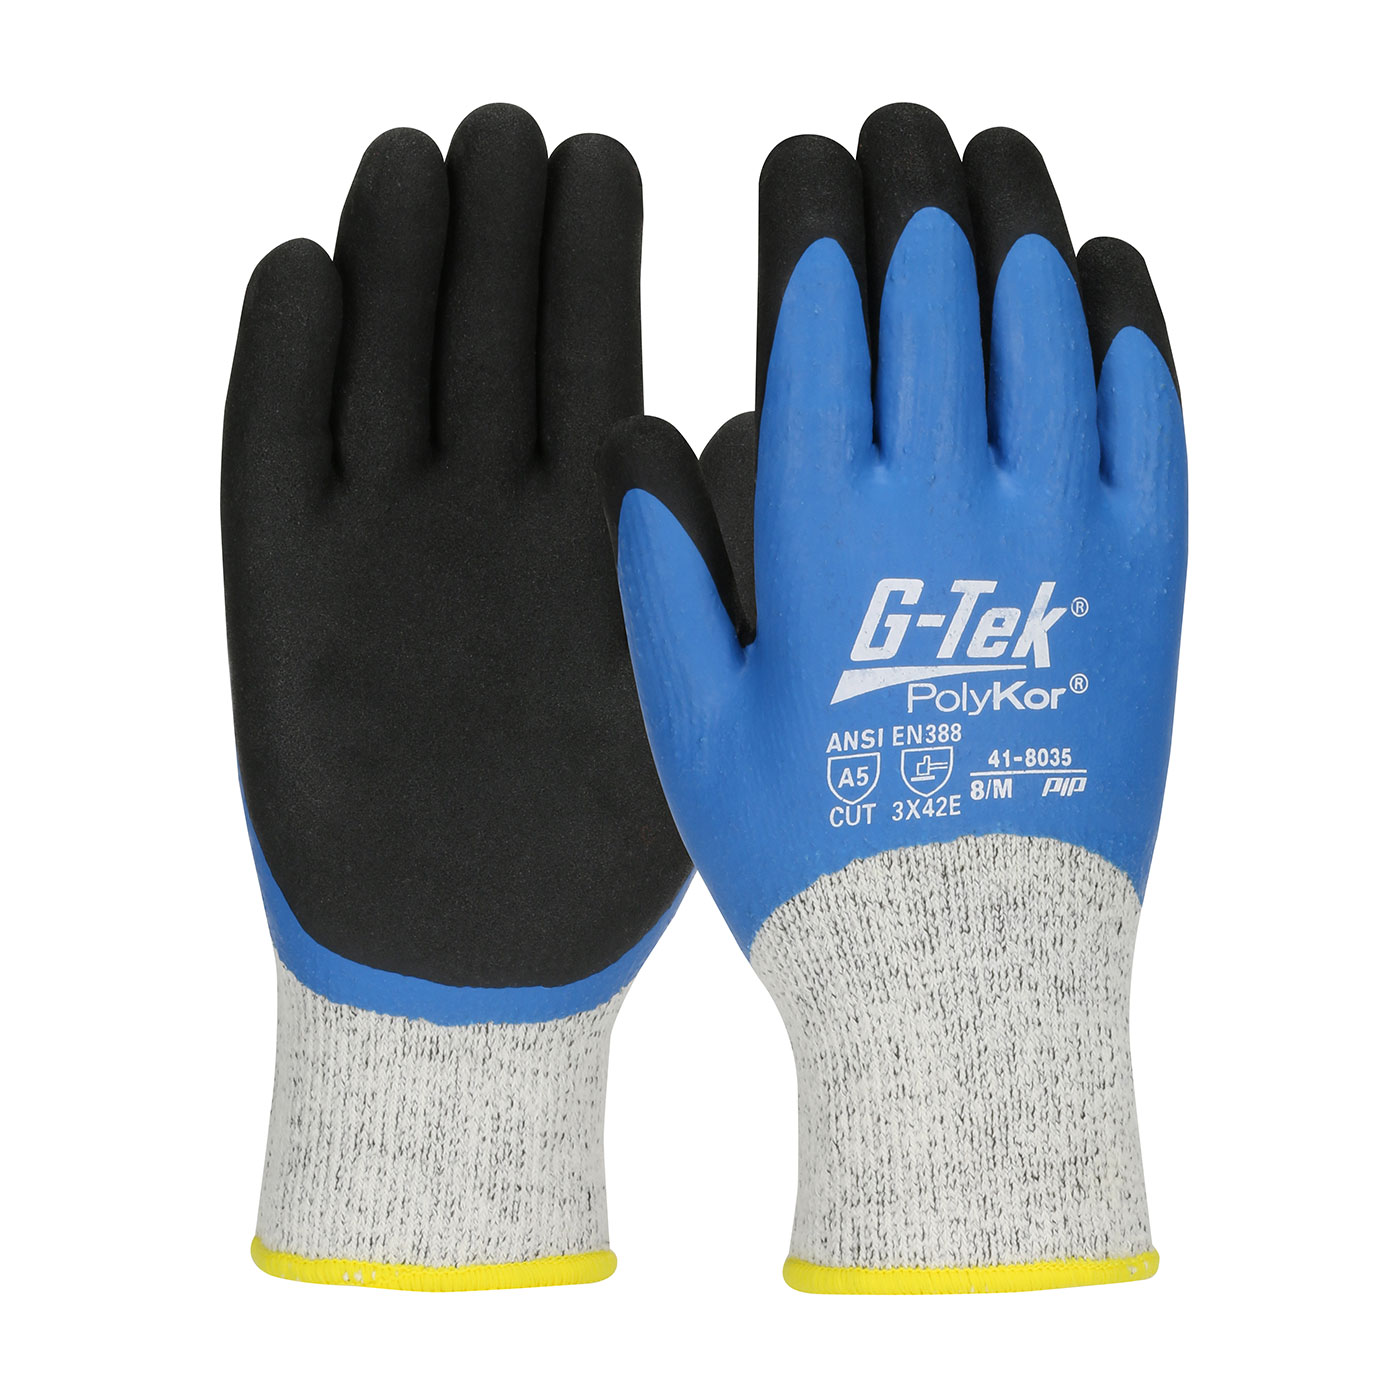 #41-8035 PIP® G-Tek® Seamless Knit PolyKor® Glove with Acrylic Liner and Double Dipped Latex  Coated MicroSurface Grip on Full Hand